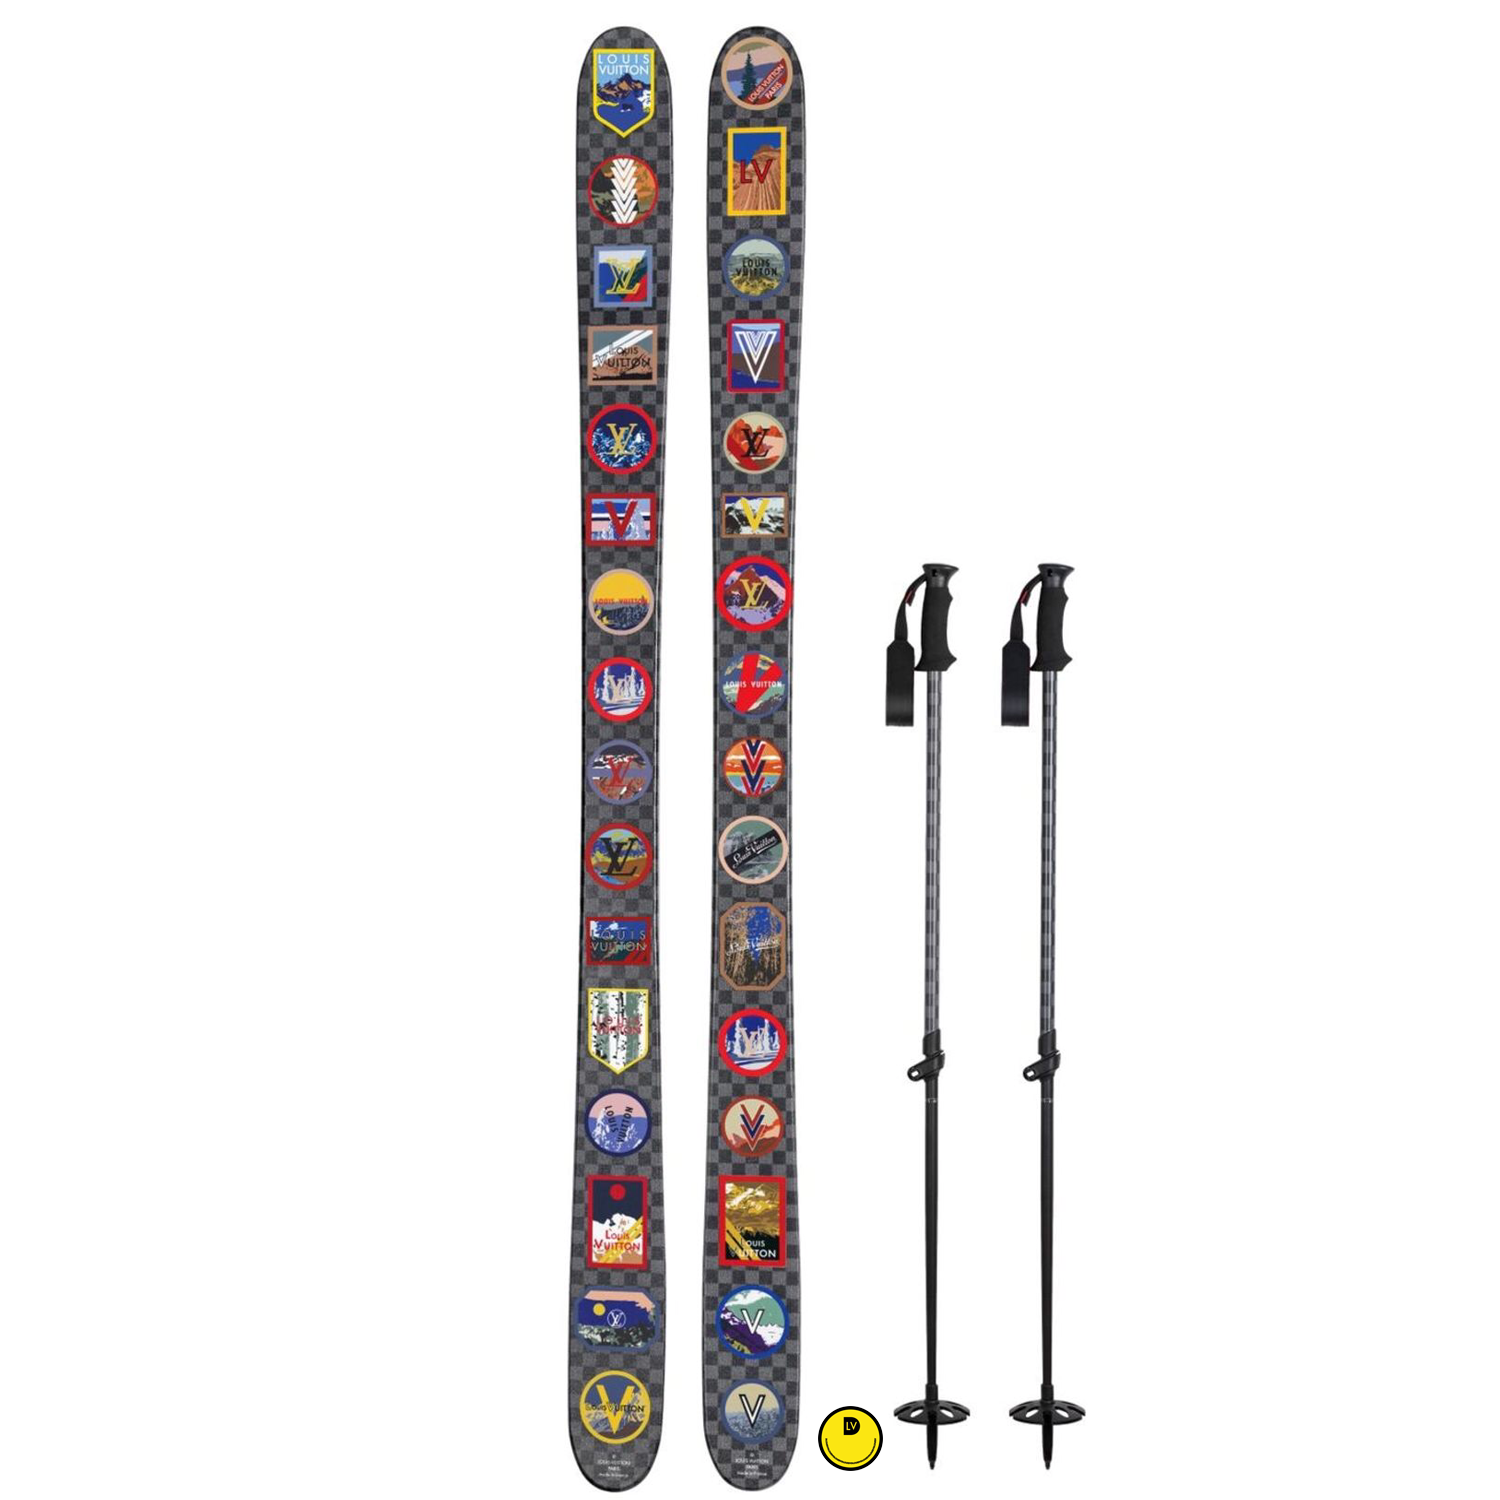 SKIS - €3500 $4700*R98007DAMIER GRAPHITE ALPS